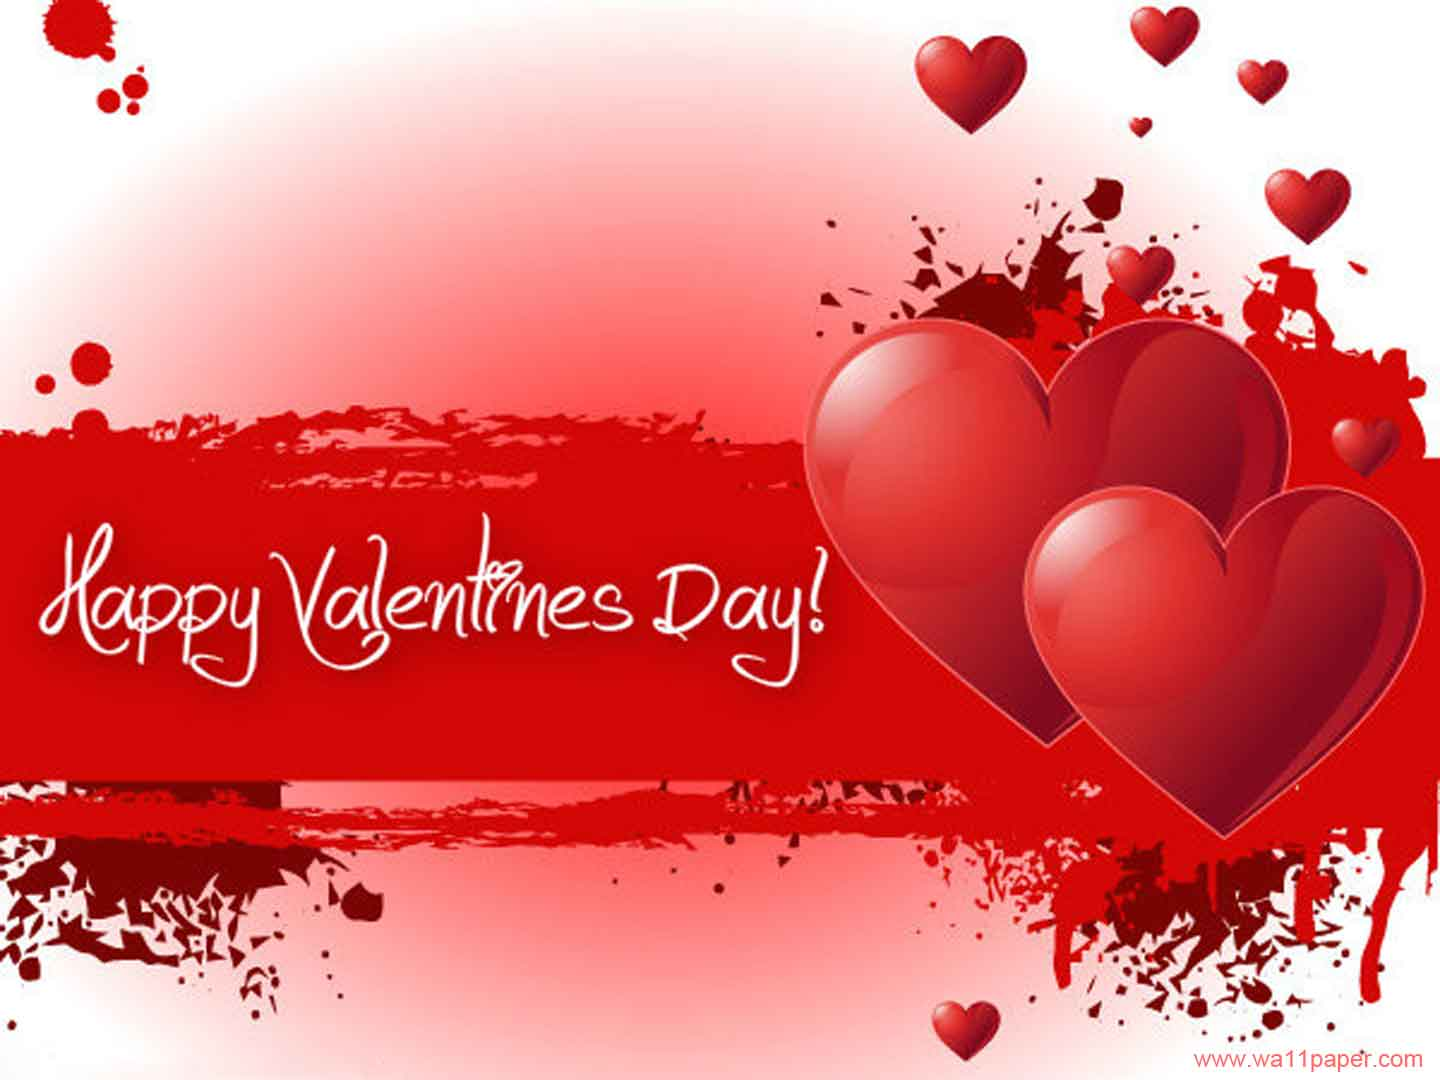 most beautiful happy valentine's day greeting pictures and images, Natural flower